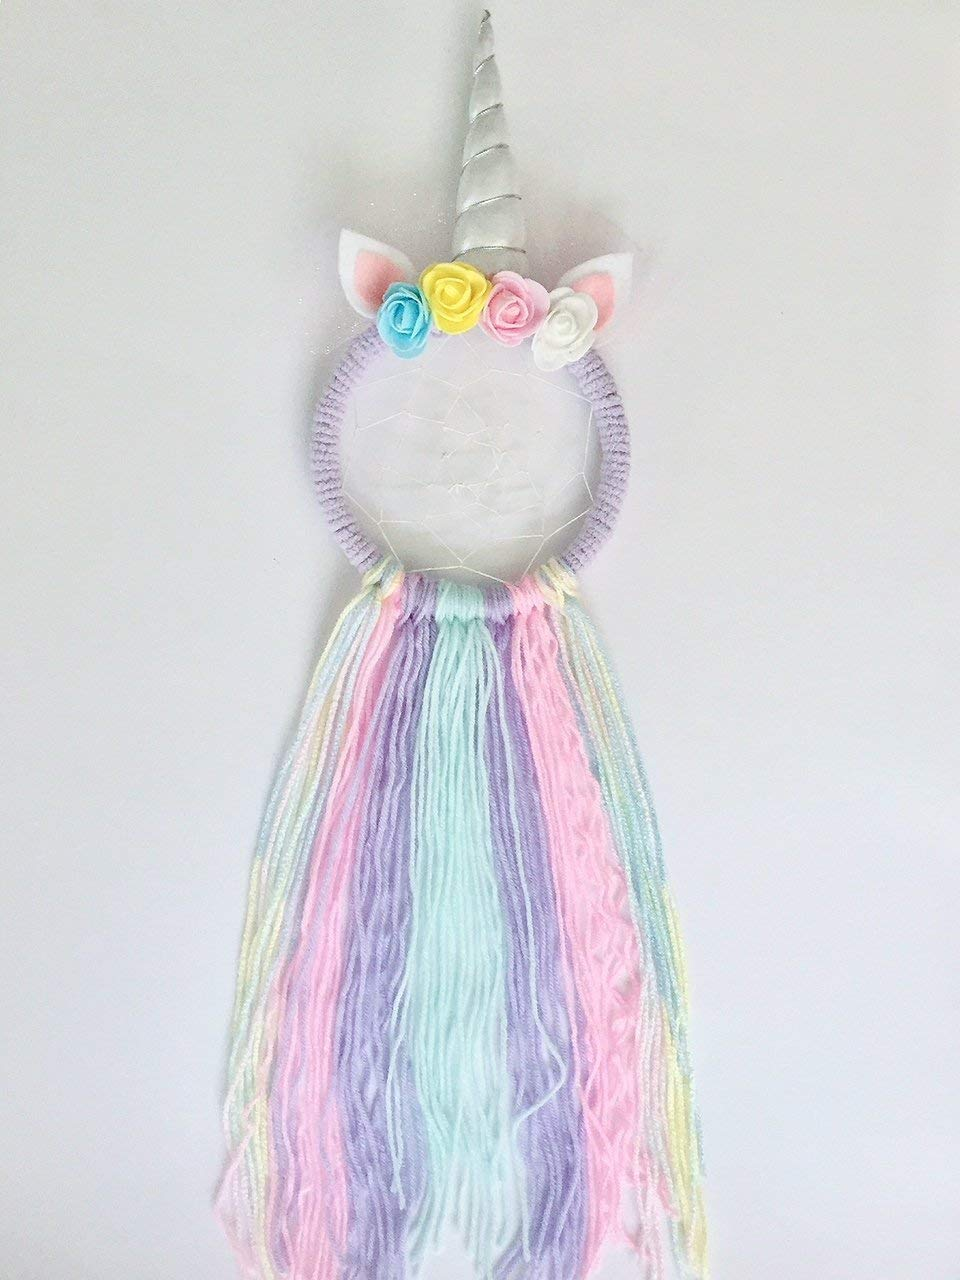 Full Size Make Your Own Unicorn Dream Catcher Kit Kids Craft Gifts for girls 4